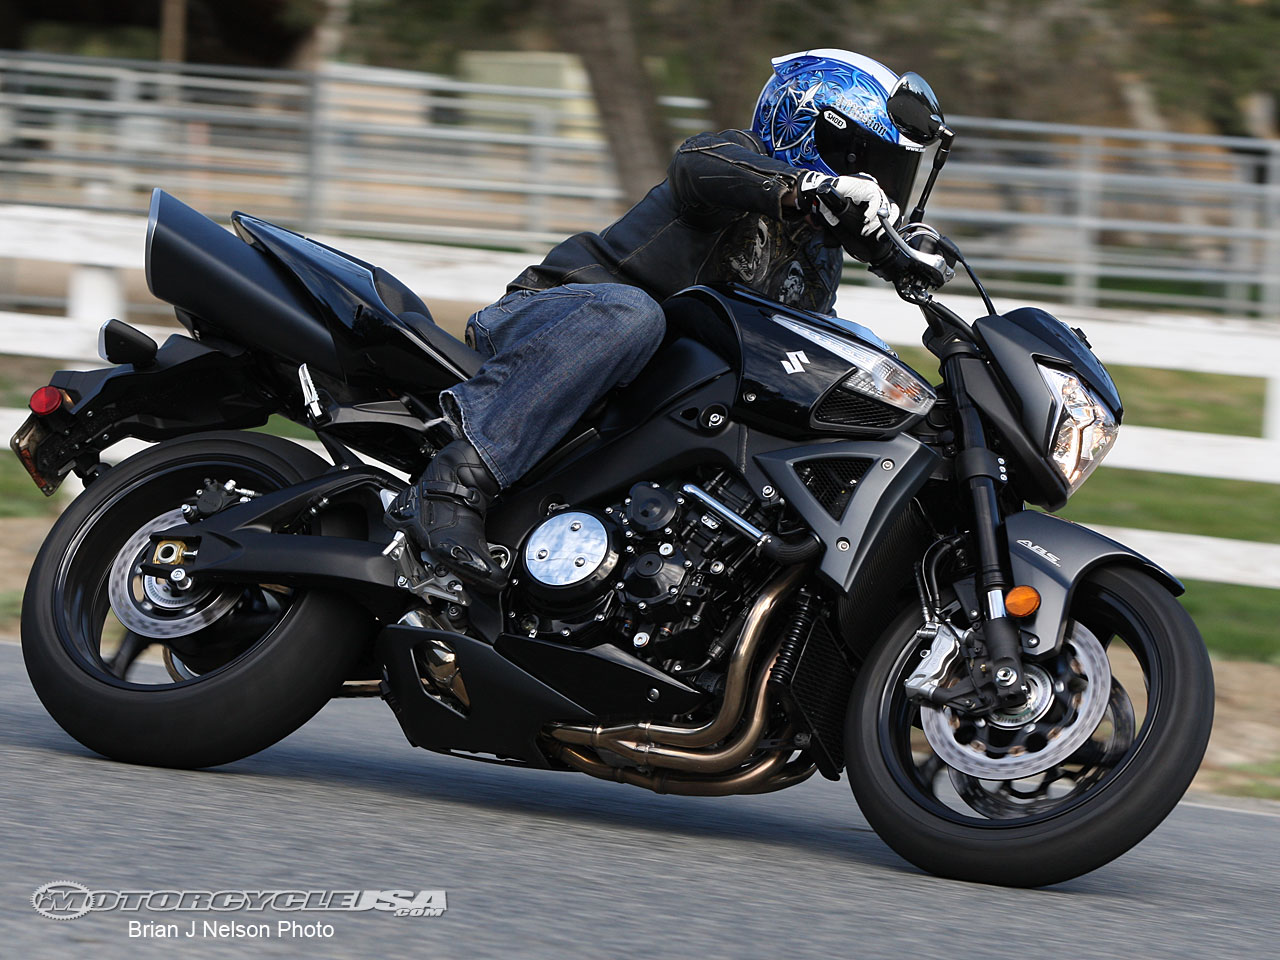 suzuki b-king abs #7